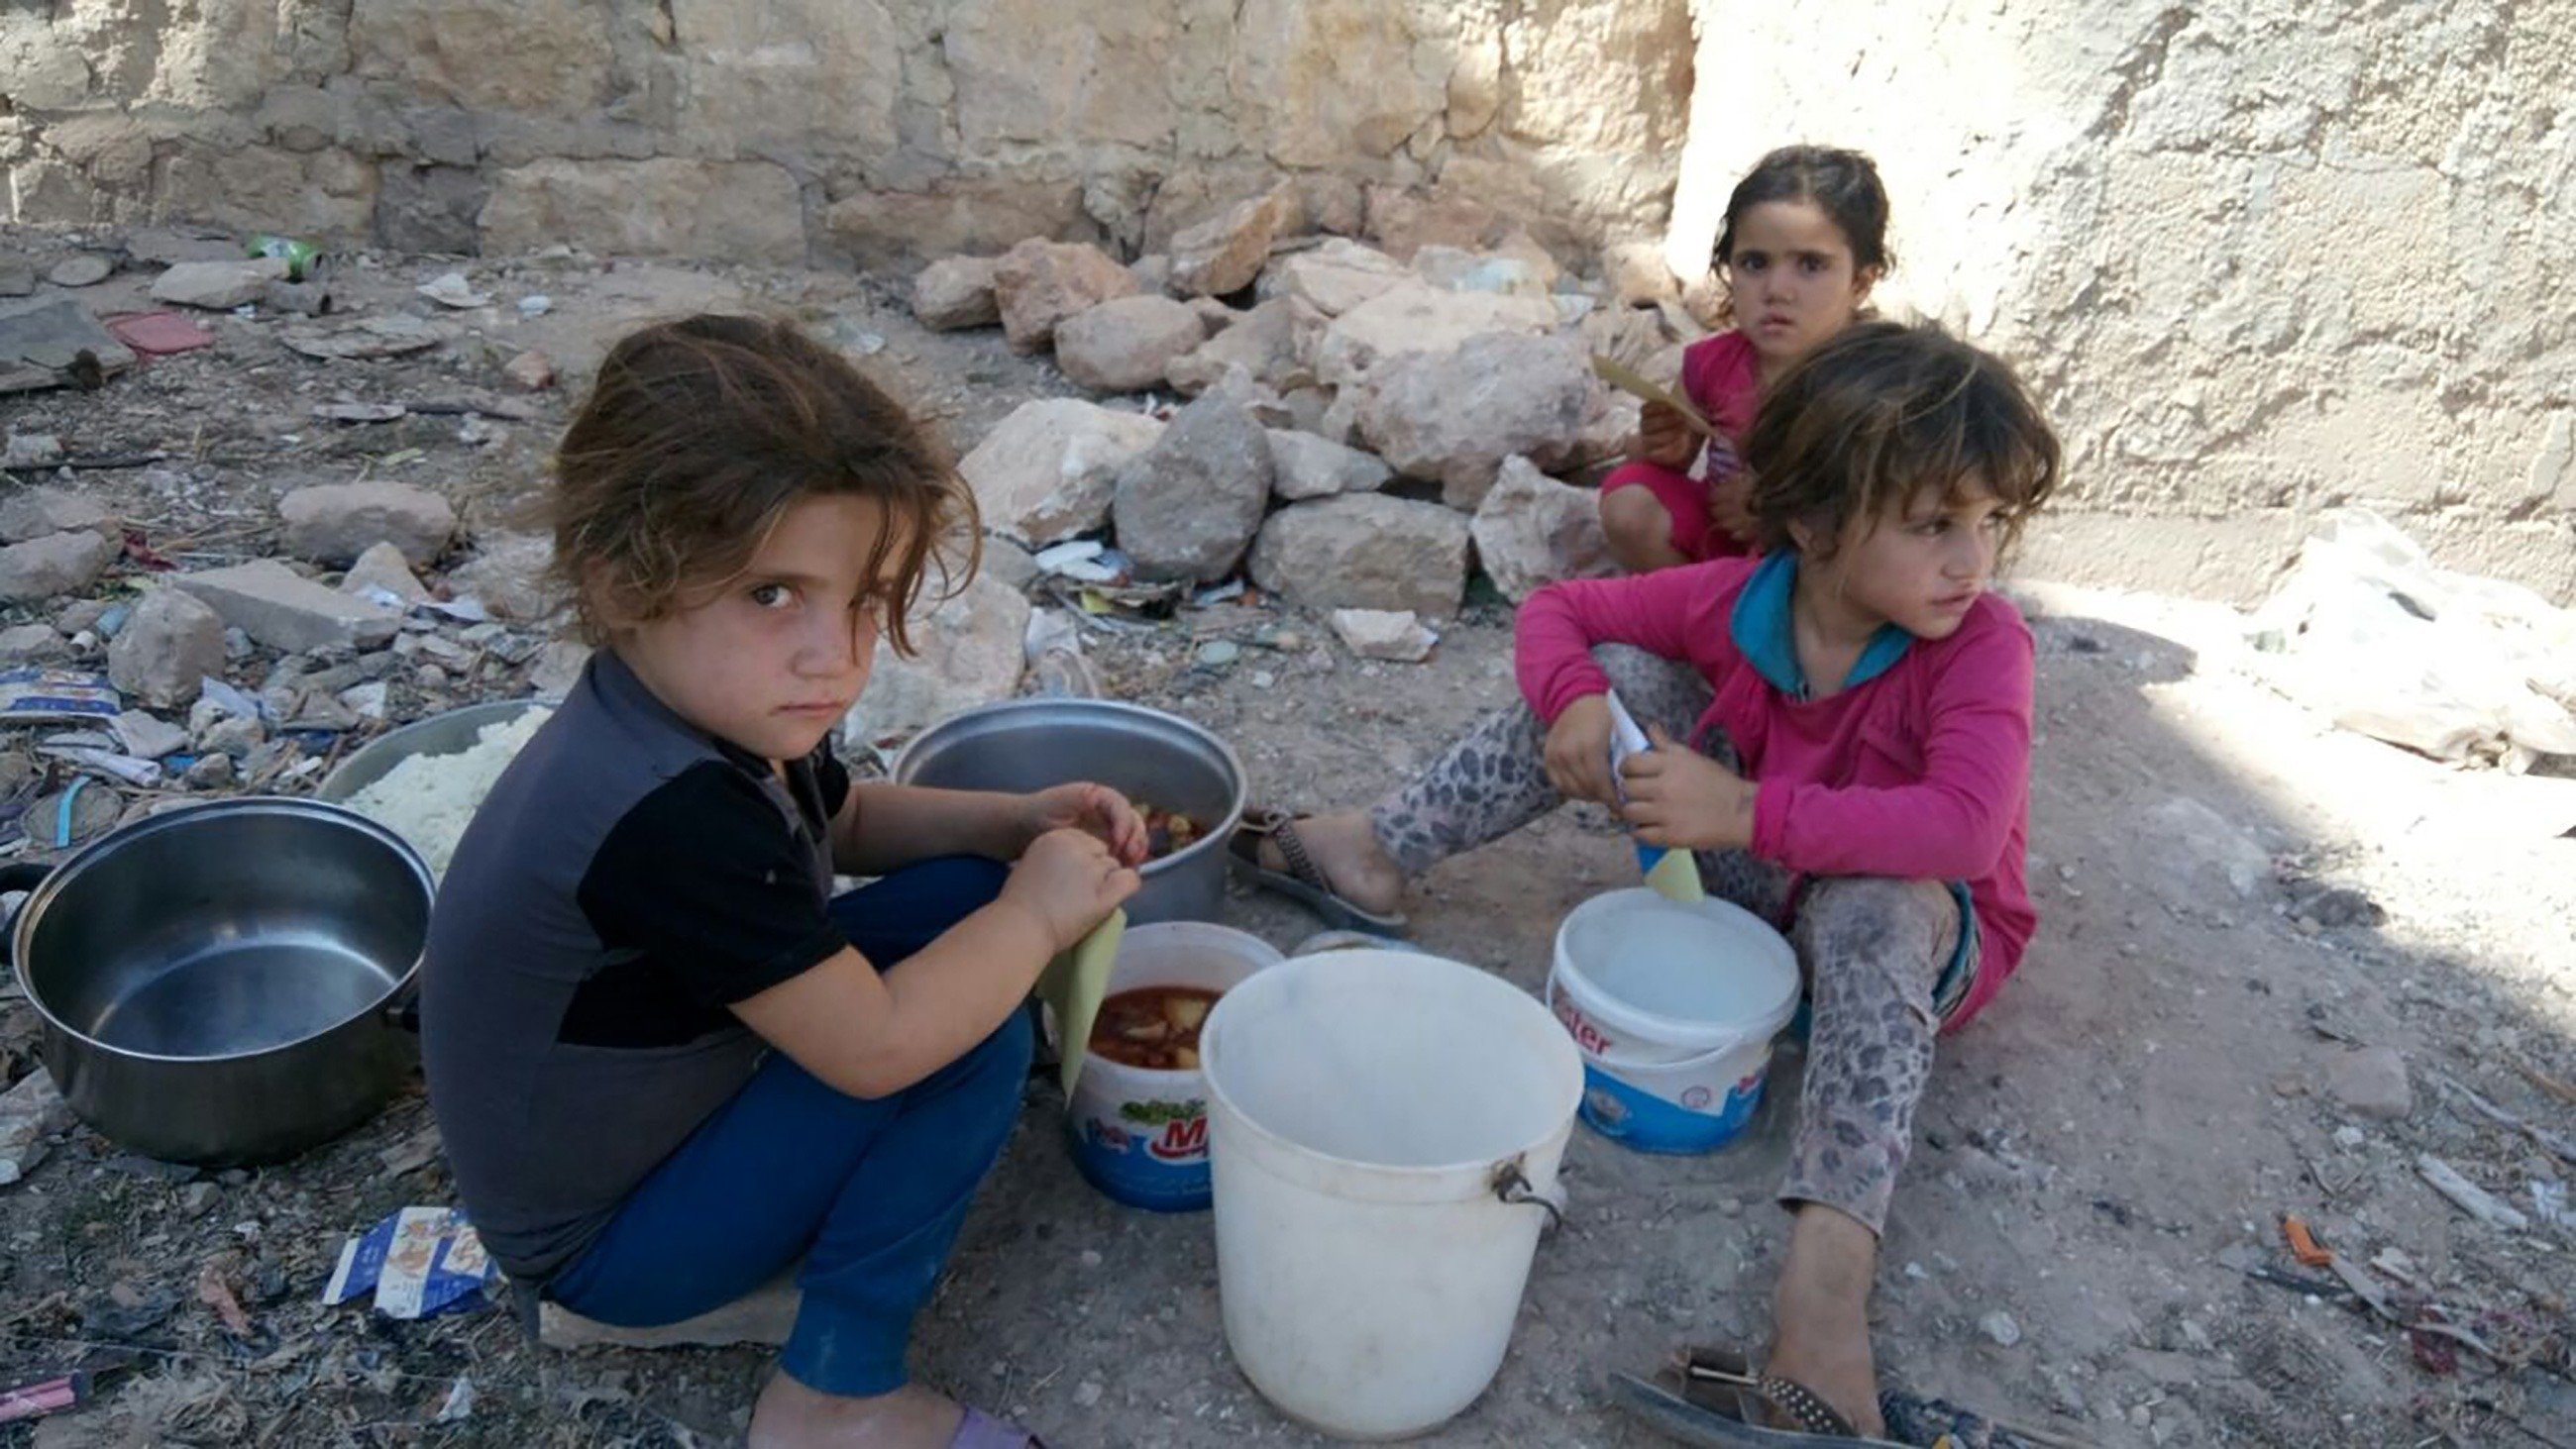 Traumatisierte Kinder in Syrien